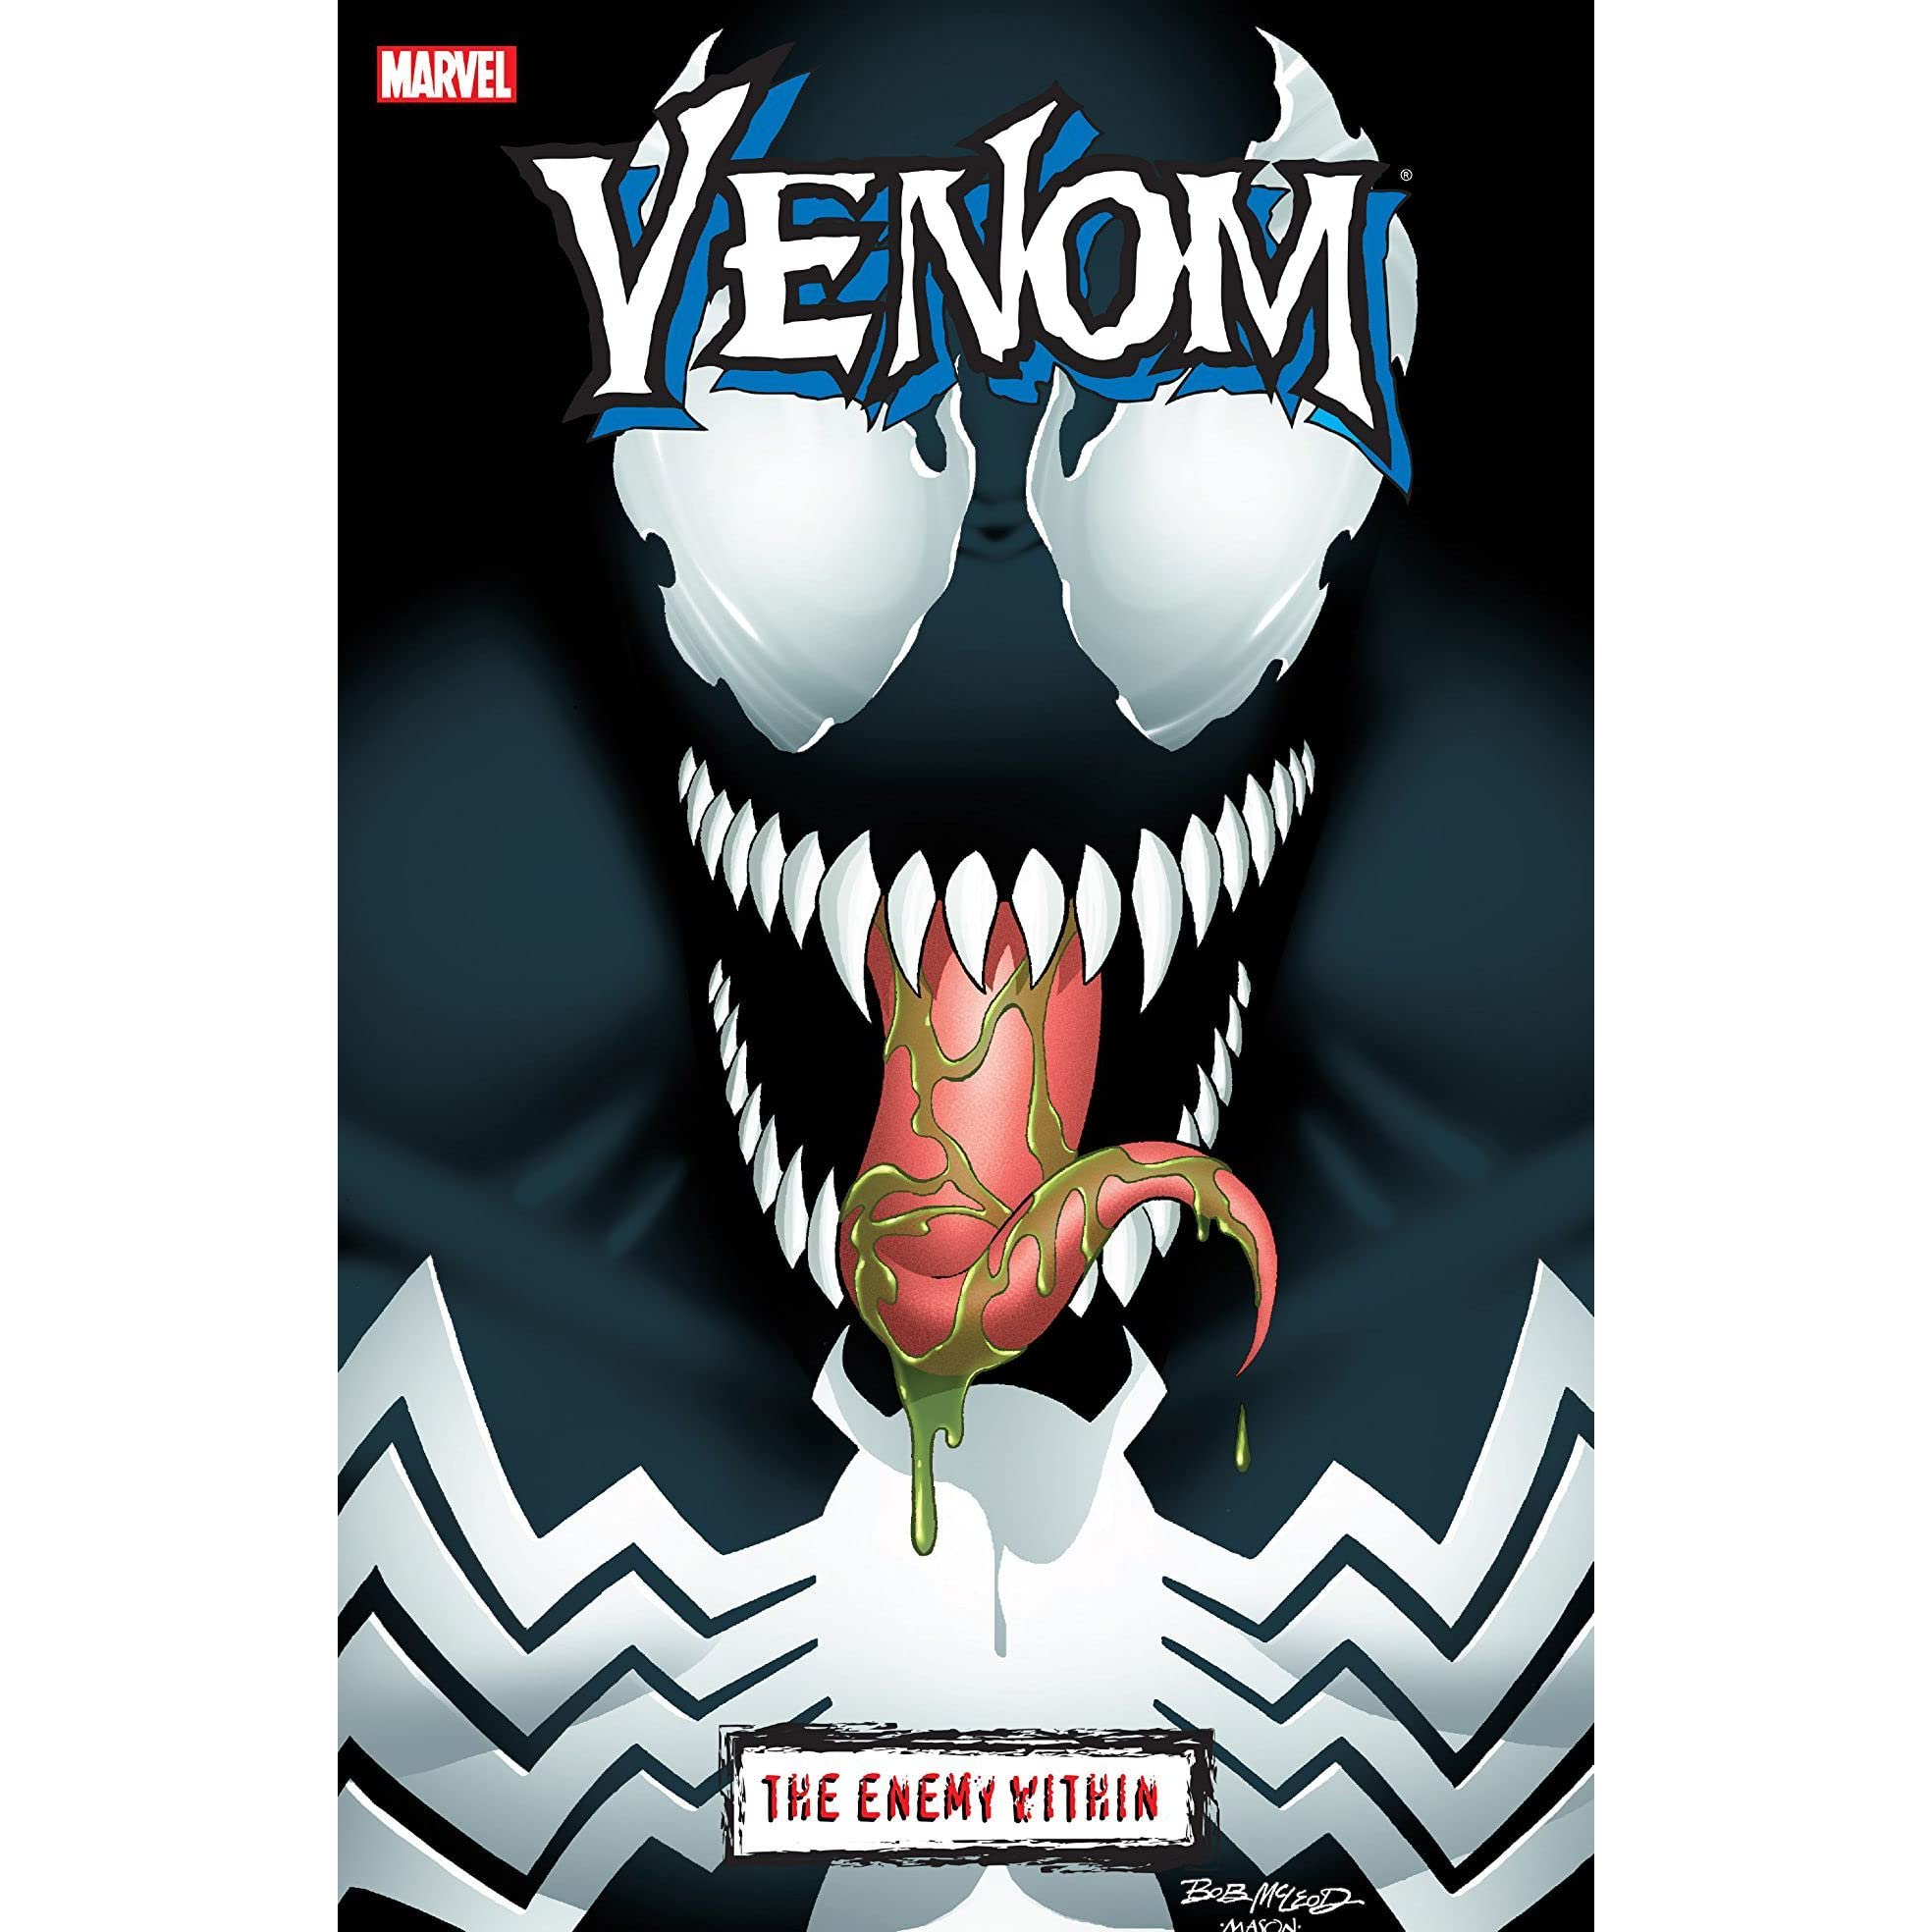 Venom: The Enemy Within by Carl Potts